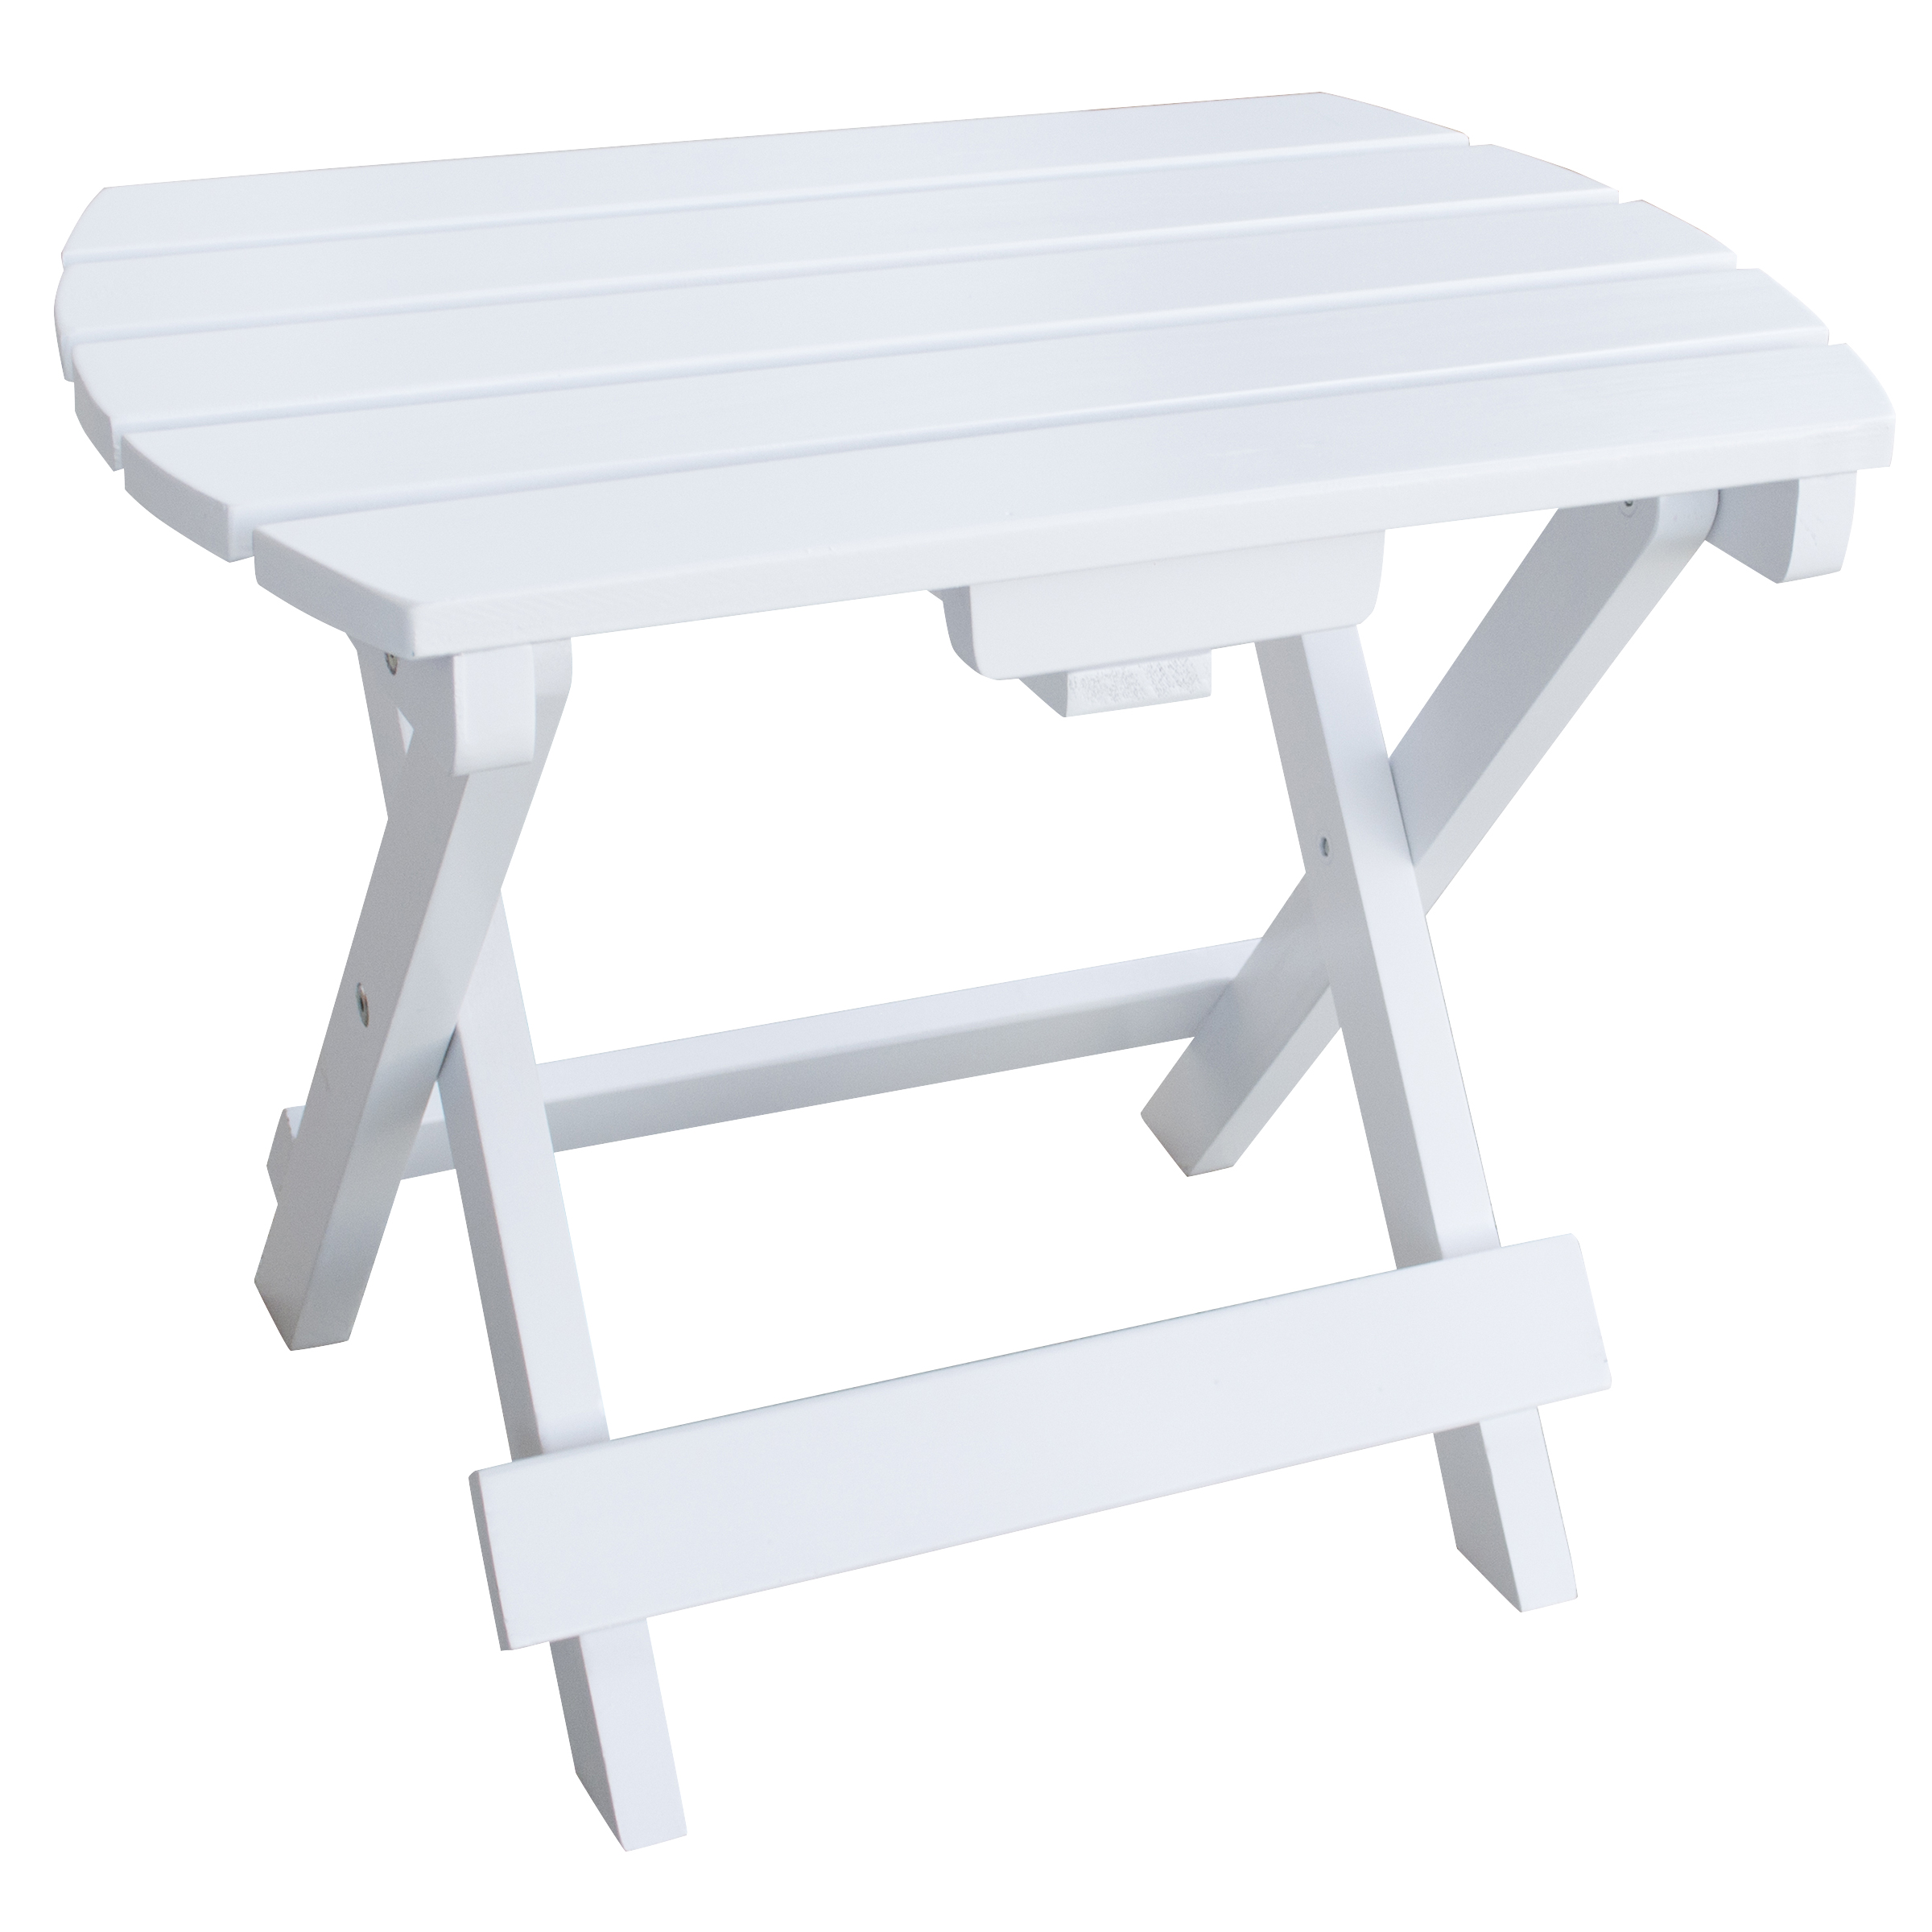 Solid Wood Adirondack Folding Side Table with Painted Finish - White